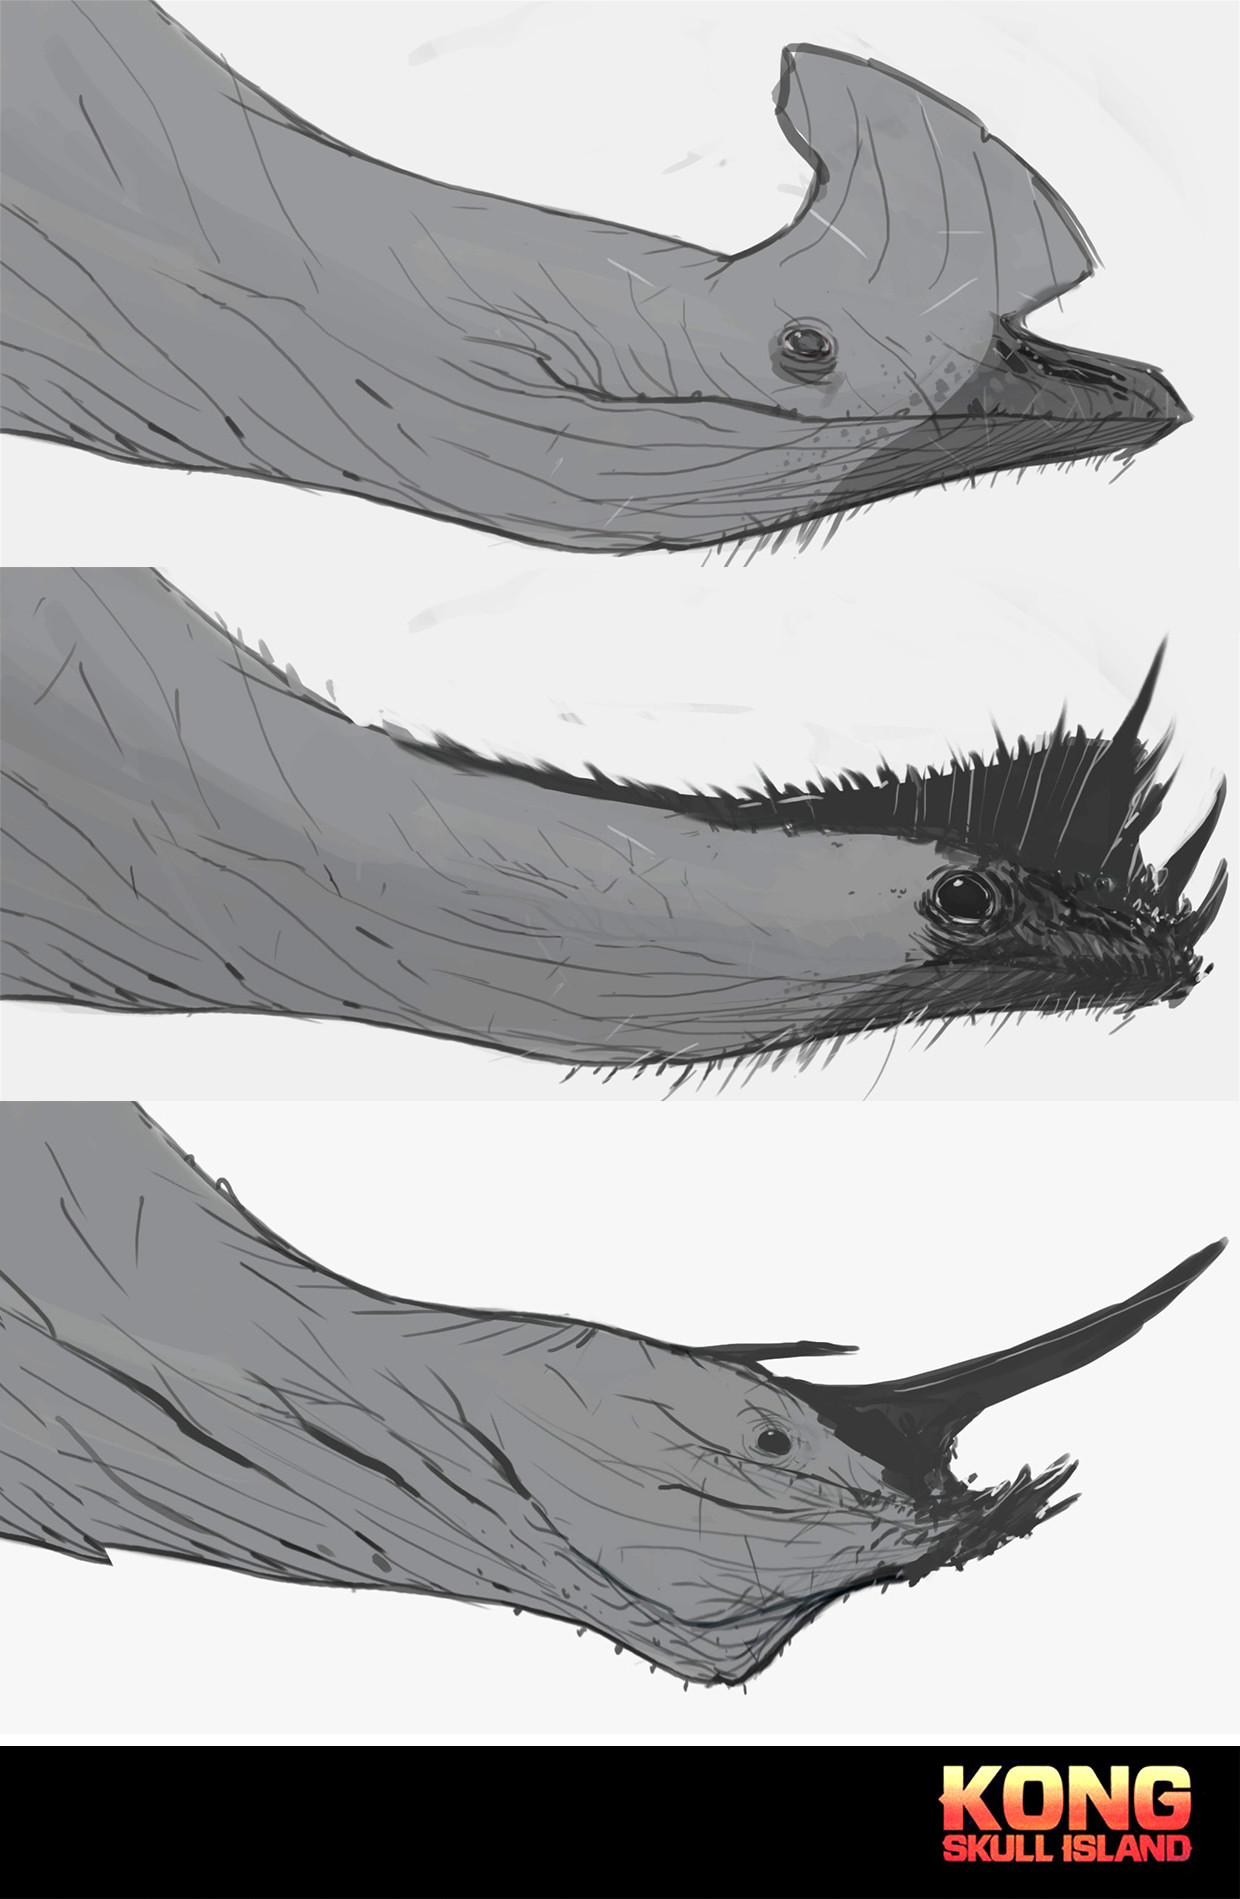 head studies, when it wasn't sure if the creature would be a reptile